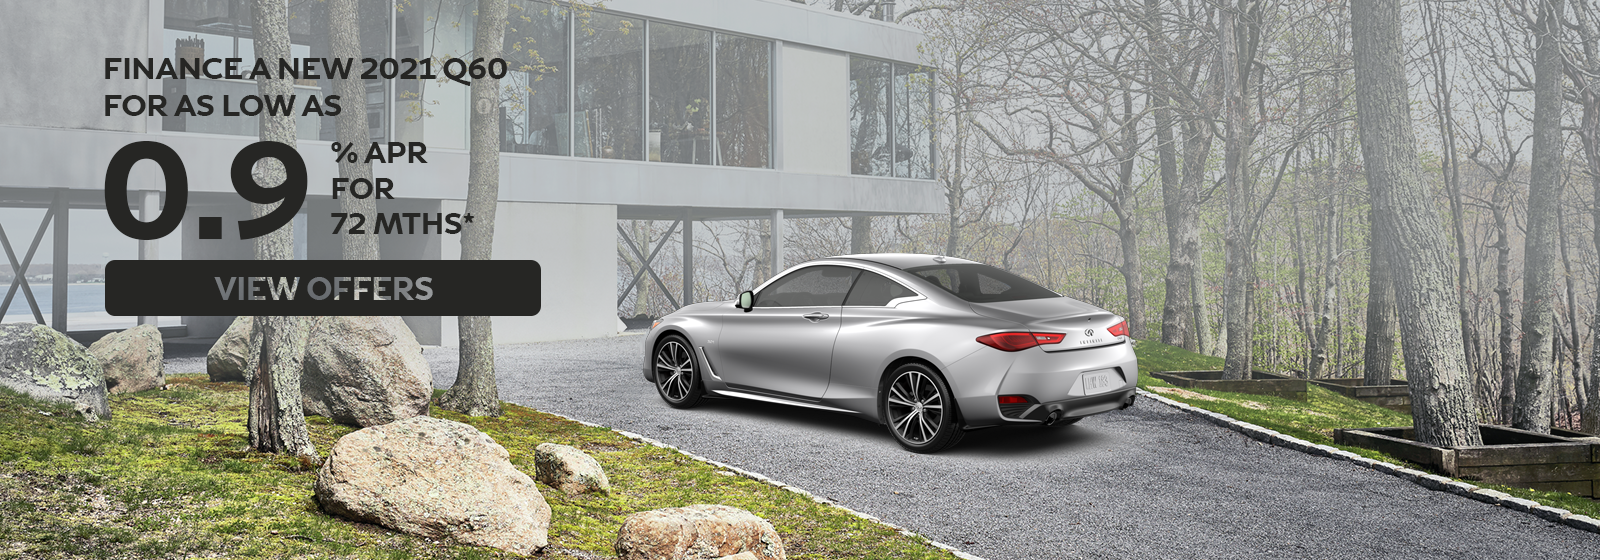 0.9% APR for up to 72 months on 2021 Q60